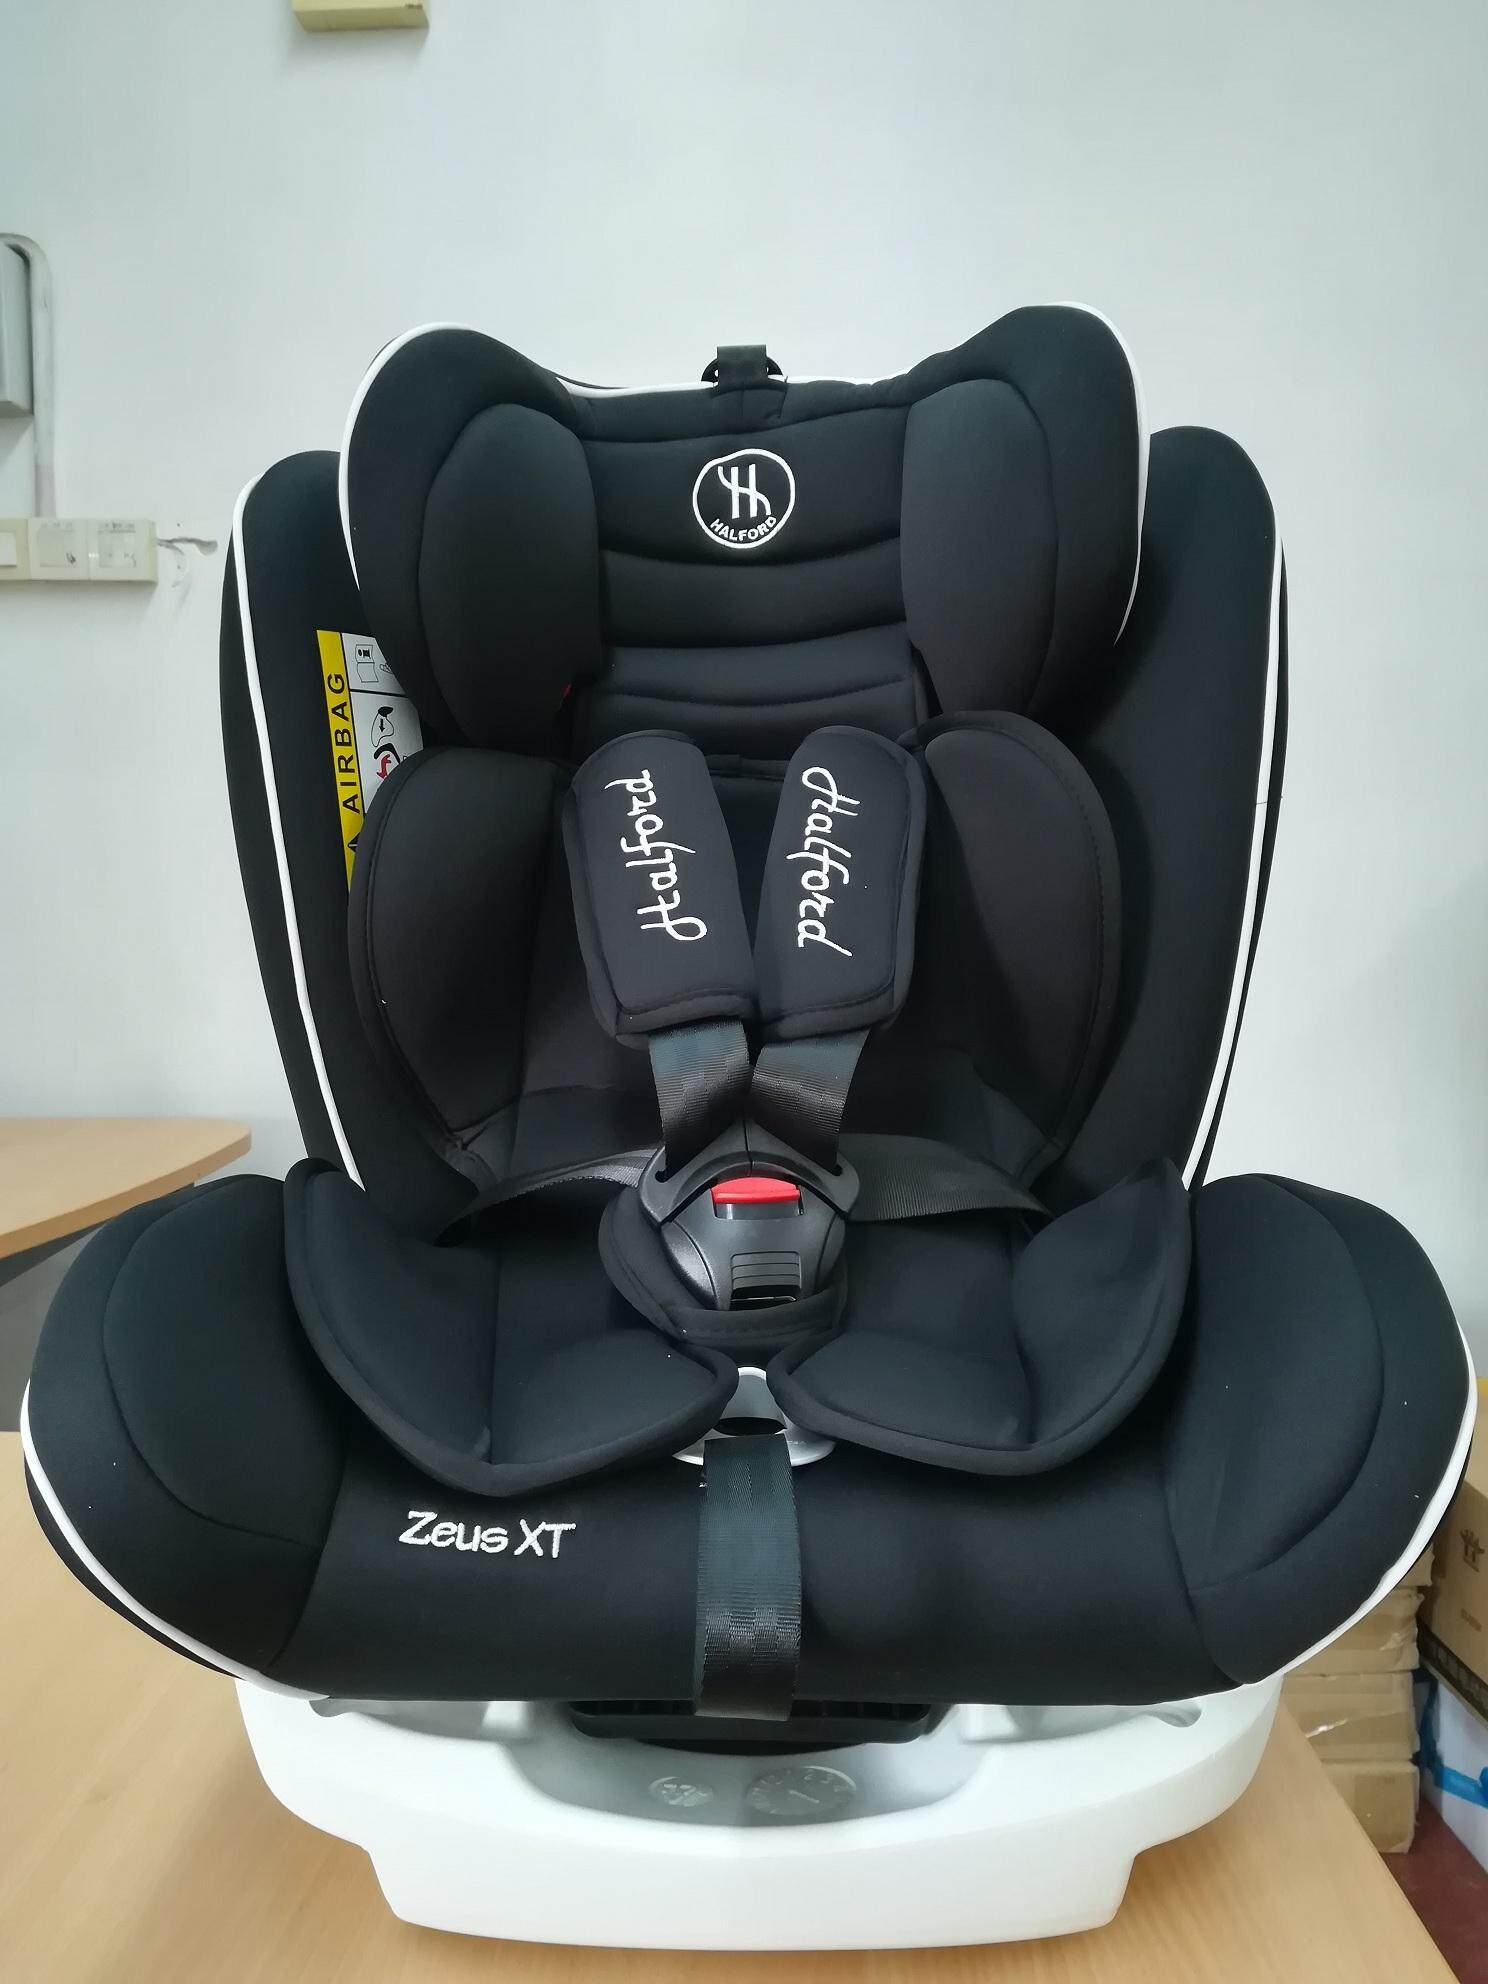 Features Halford Voyage Xt Isofix Car Seat New Born To 7 Year Old Wiring Harness Adaptor Halfords Zeus Convertible